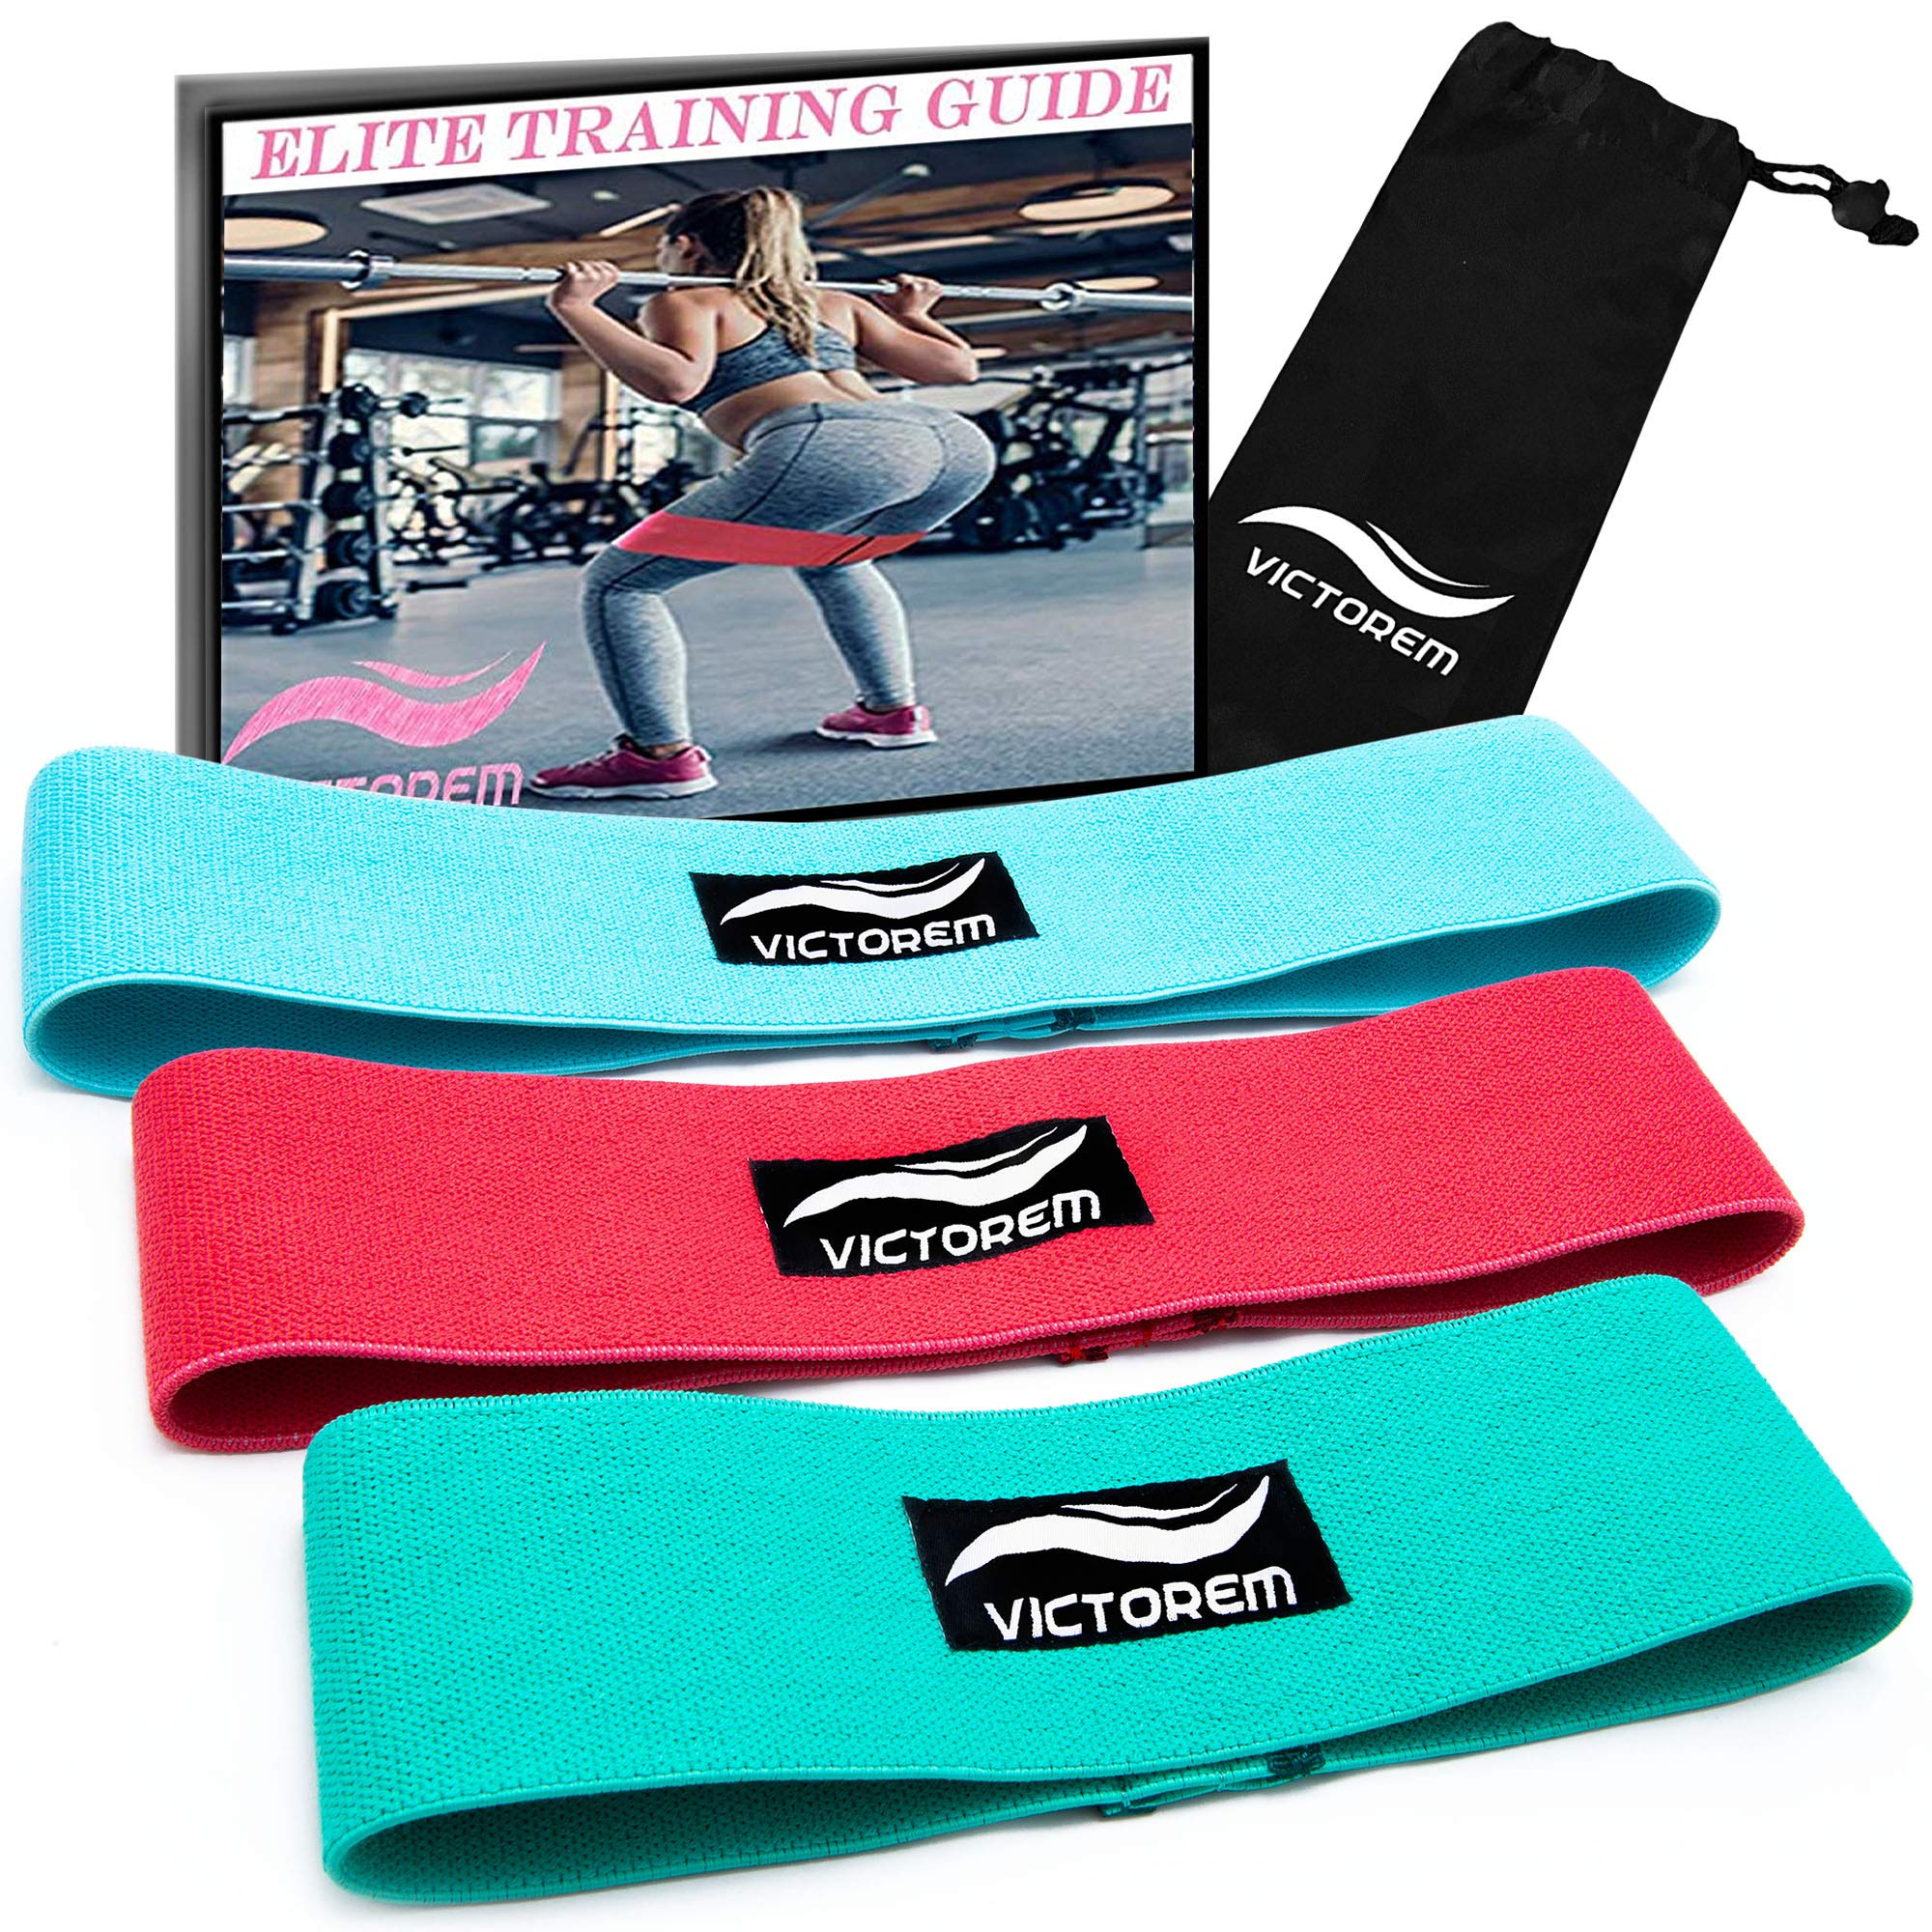 VICTOREM Booty Resistance Workout Hip Exercise Bands – Fitness Loop Circle Exercise Legs & Butt - Activate Glutes & Thighs – Thick, Wide, Cloth Bootie Training & Lifting Women's 80 Day Obsession